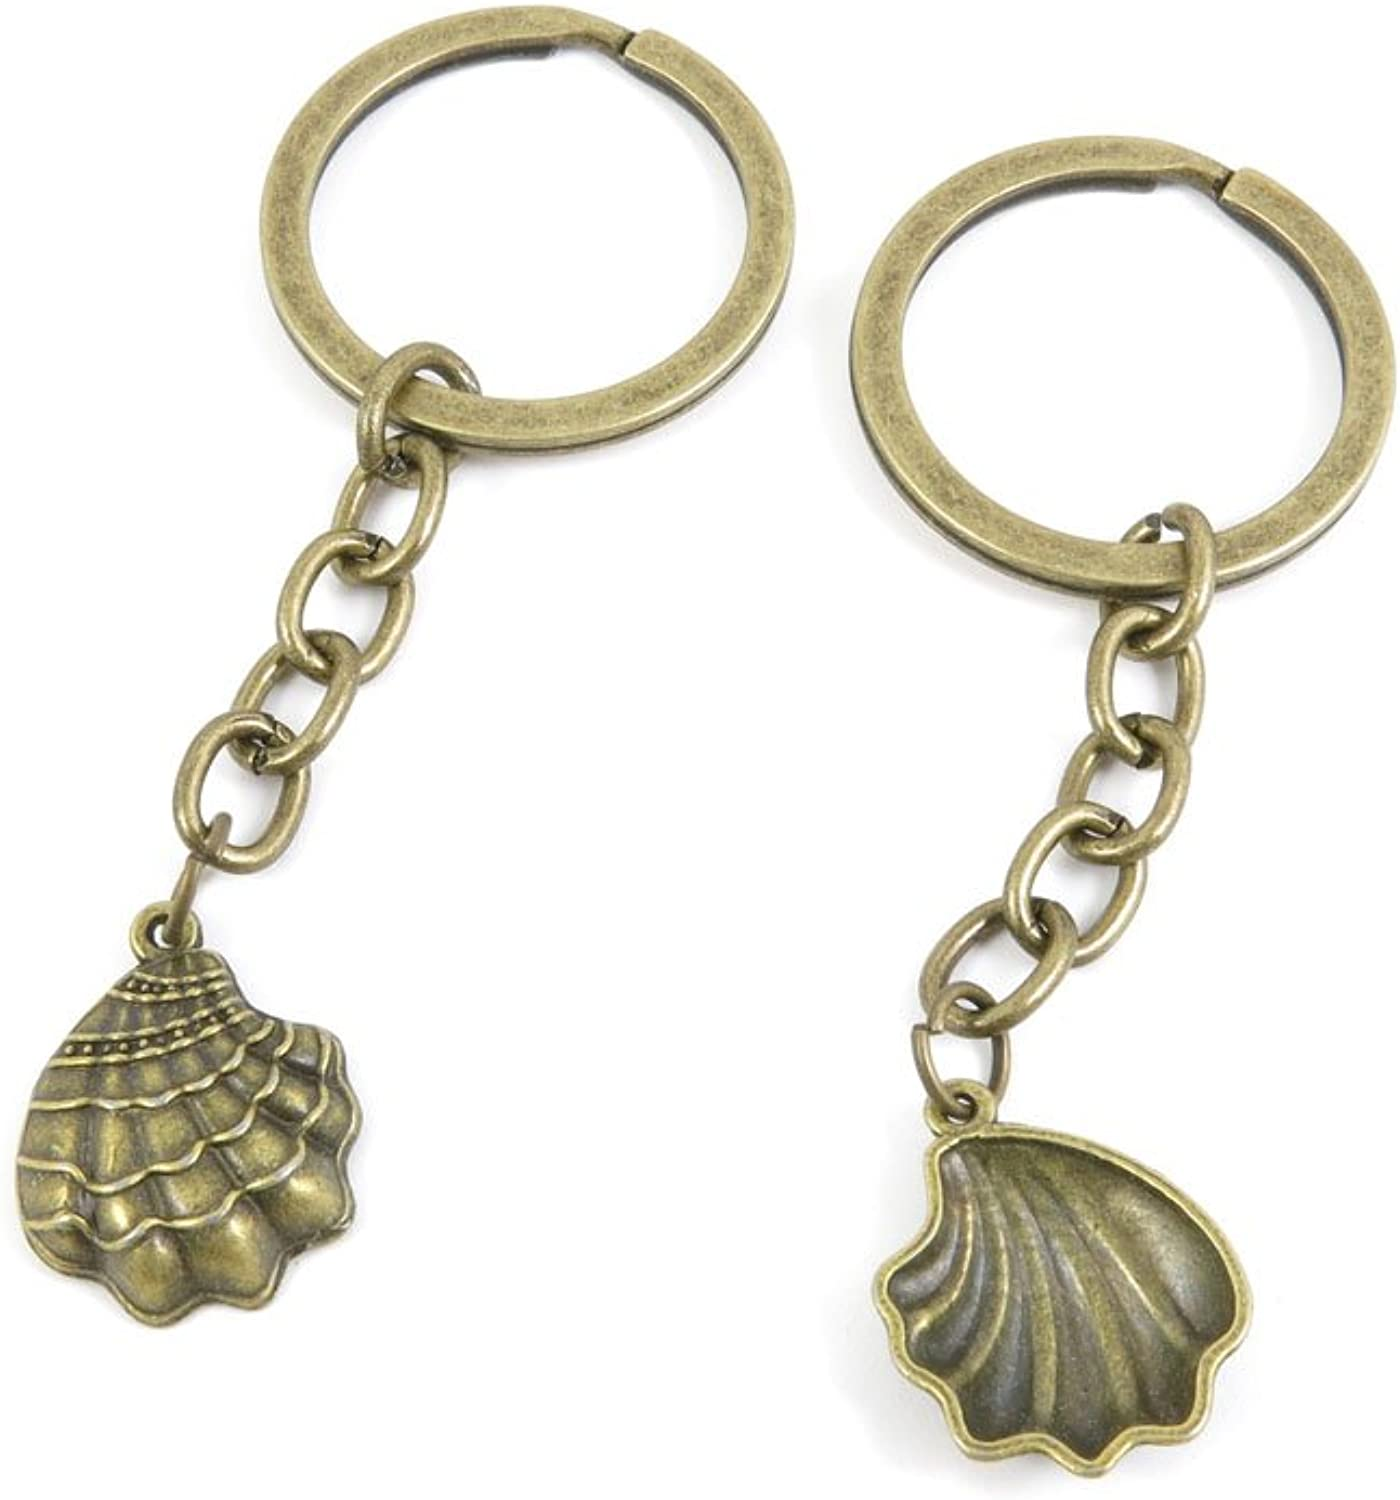 200 Pieces Fashion Jewelry Keyring Keychain Door Car Key Tag Ring Chain Supplier Supply Wholesale Bulk Lots M2KN6 Shell